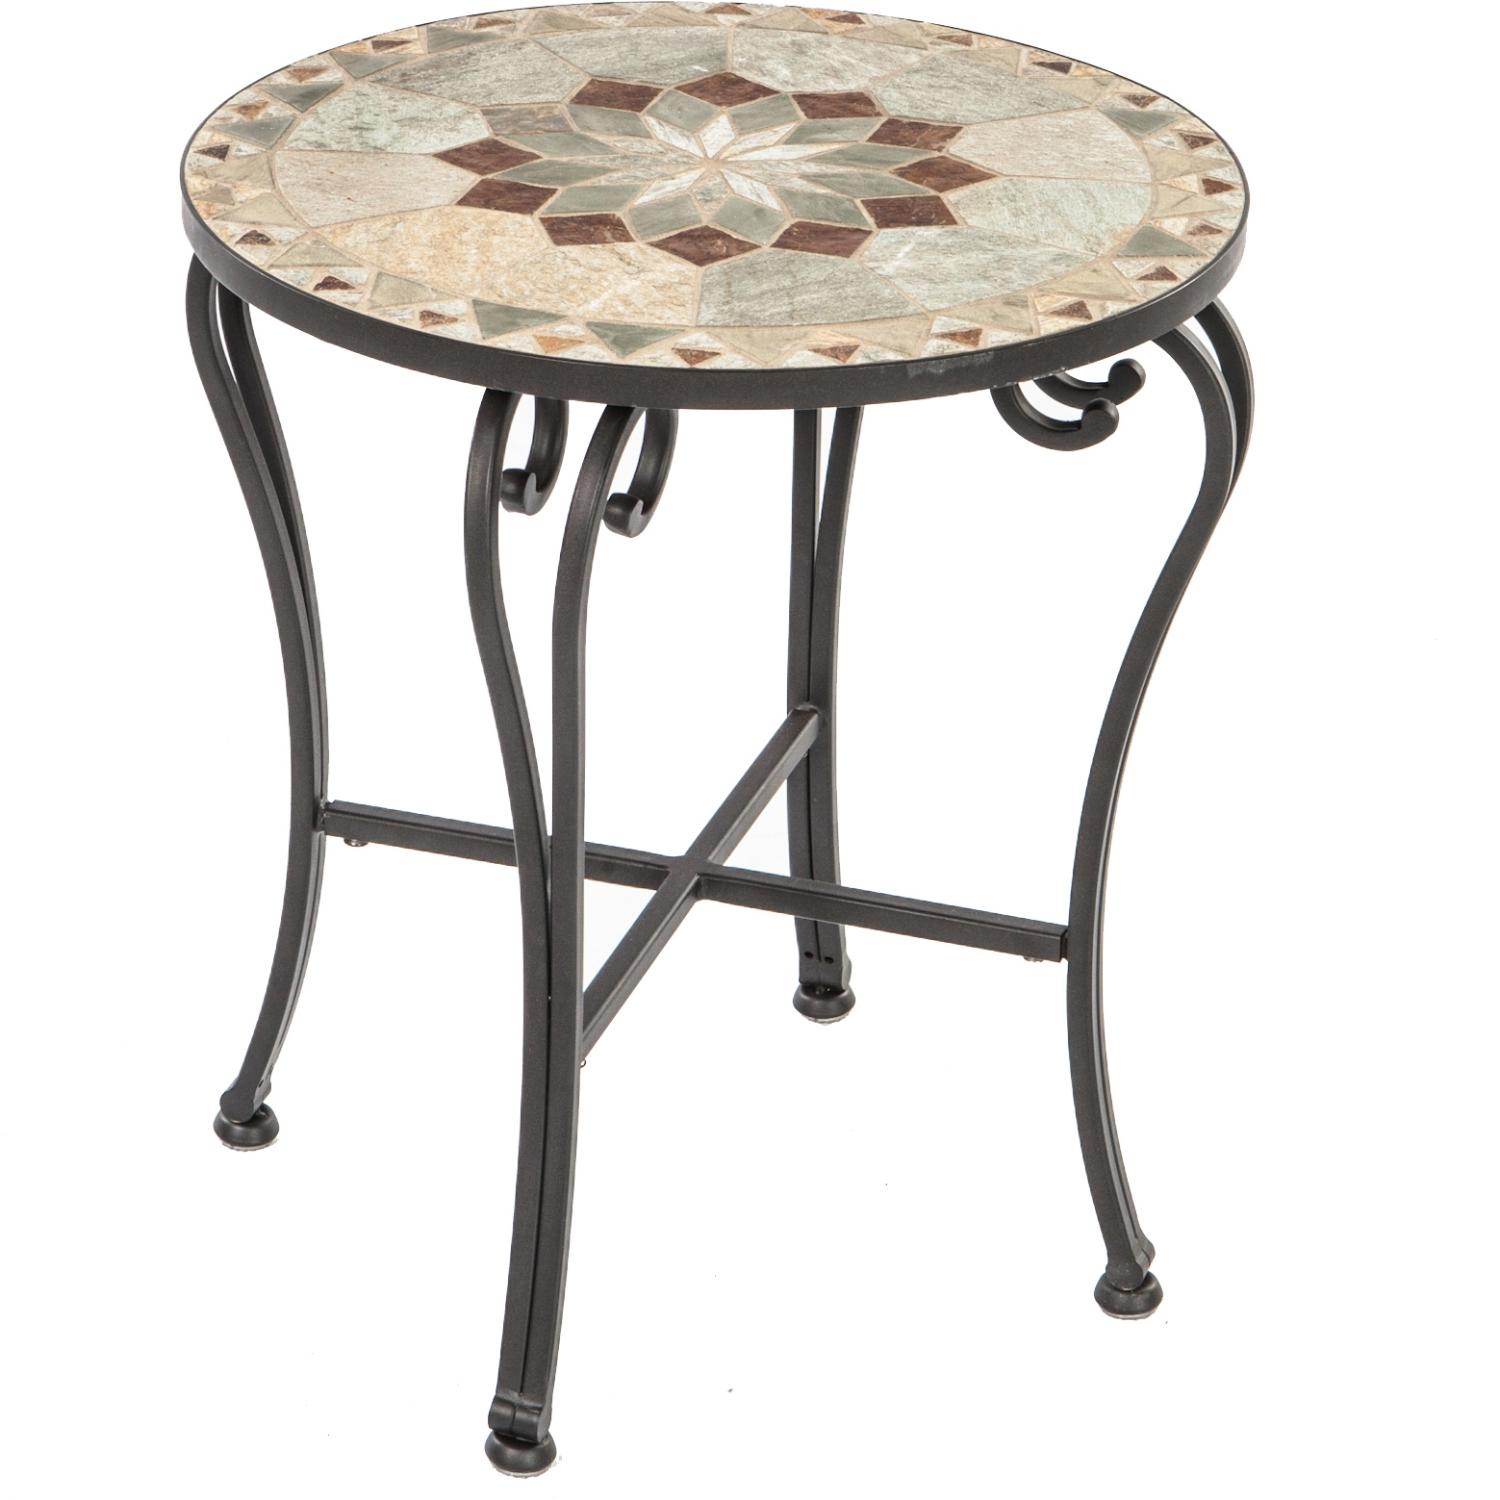 alfresco home tremiti mosaic side table patio accent triangle notre dame ultimate kohls set three glass coffee tables outdoor plant stand trestle dining room small pub sets garden